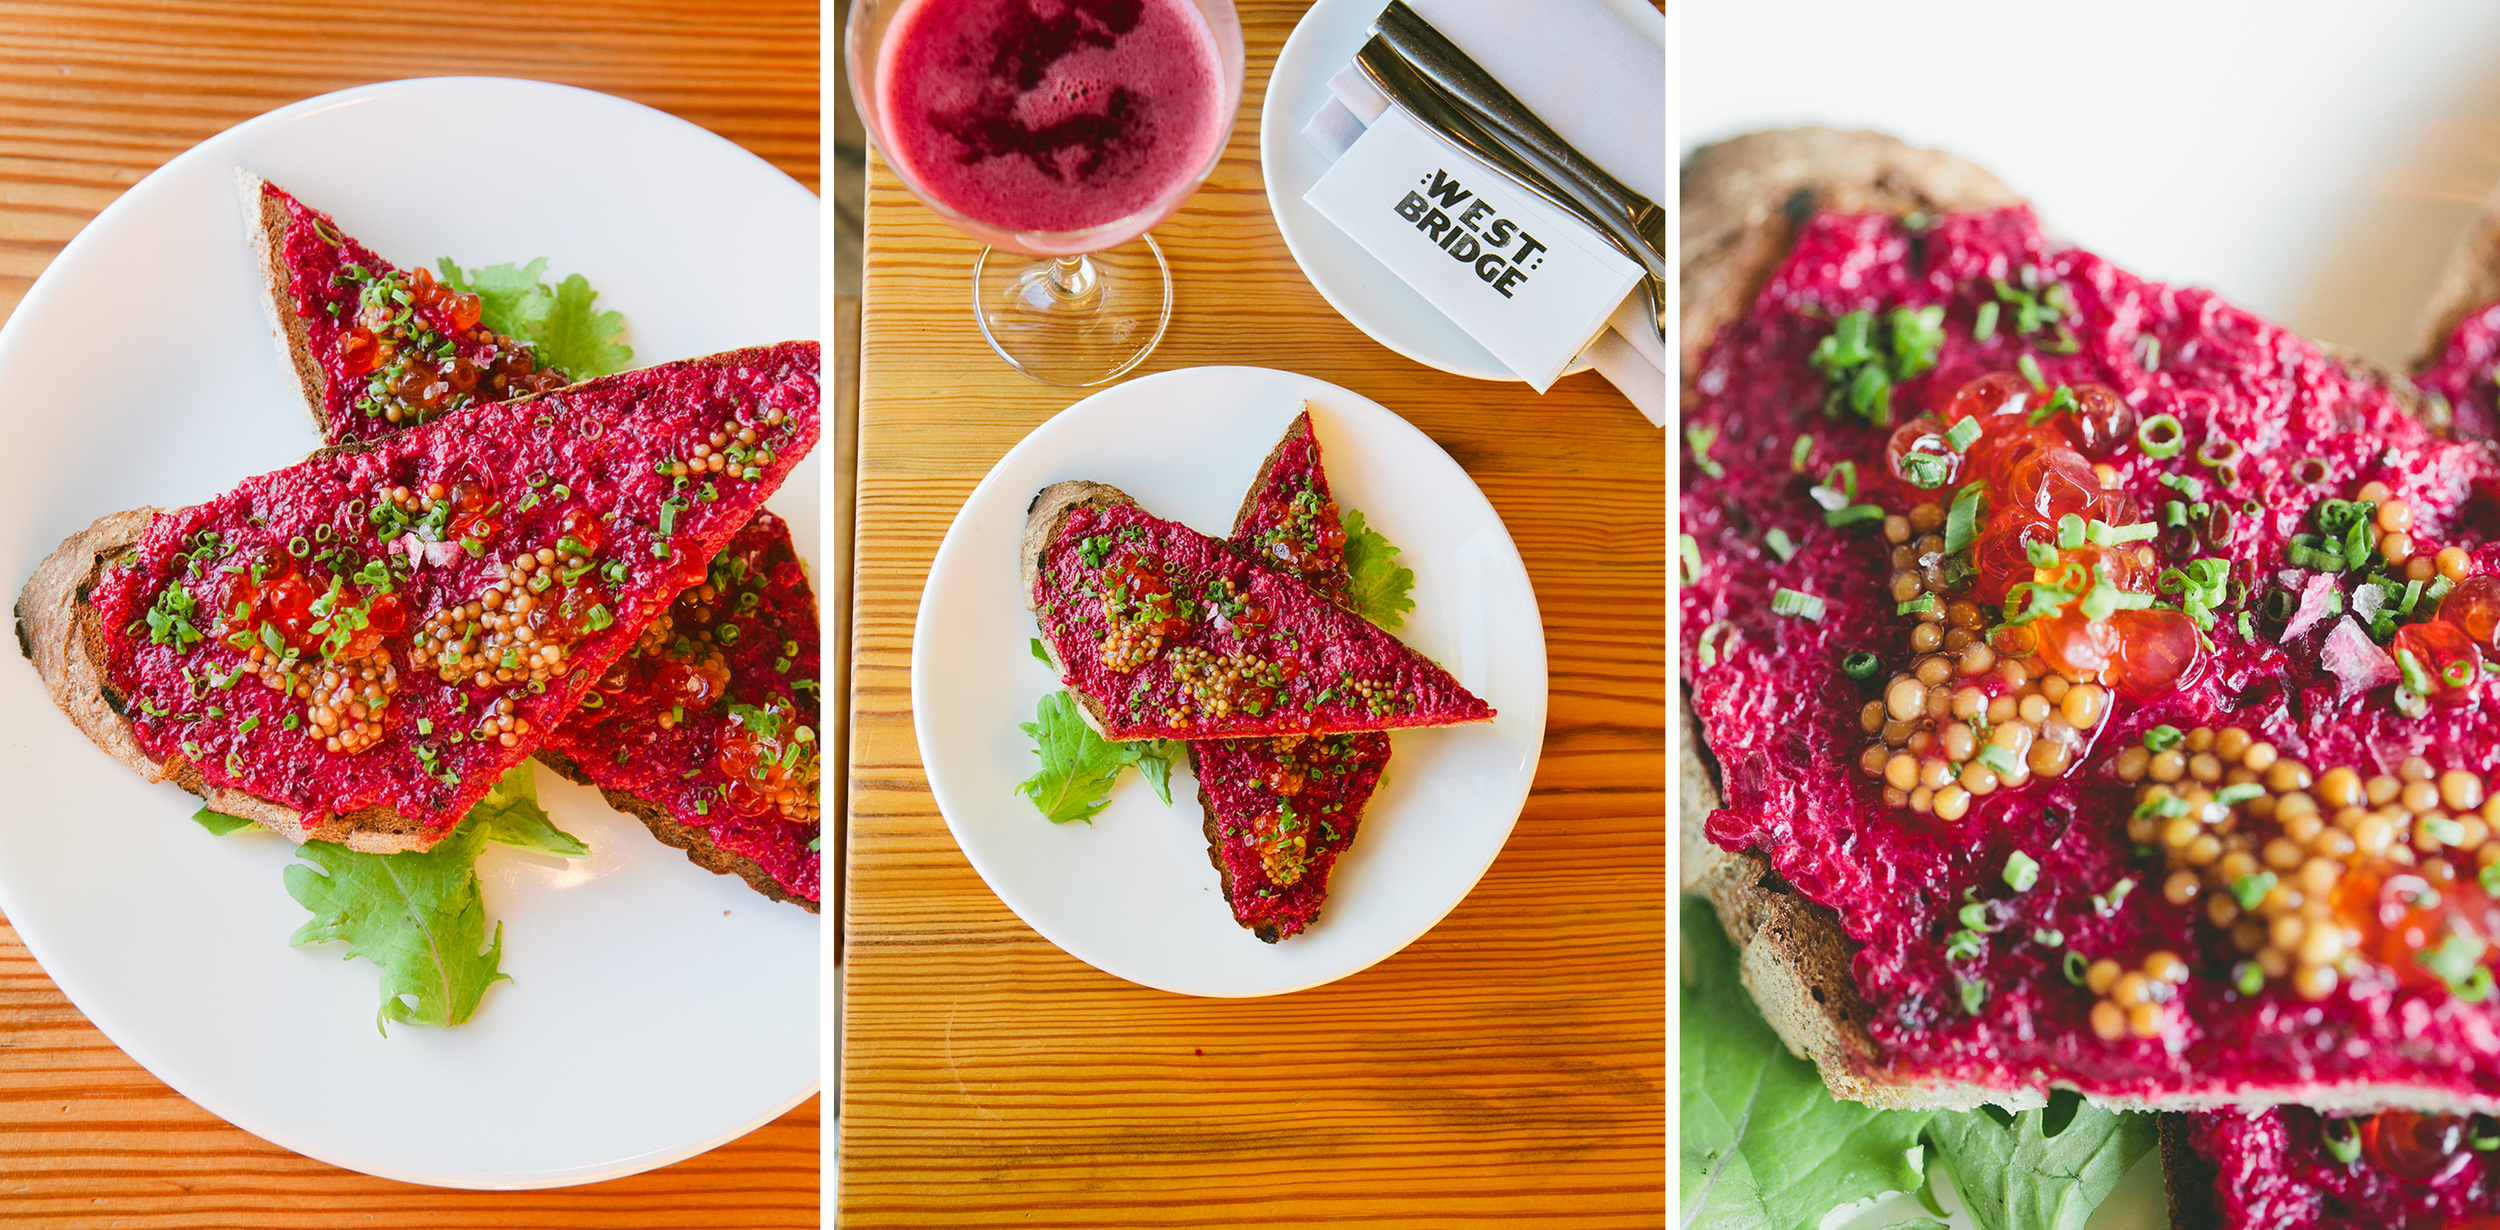 Beet and Salmon Roe Toast at West Bridge || via A Thought For Food